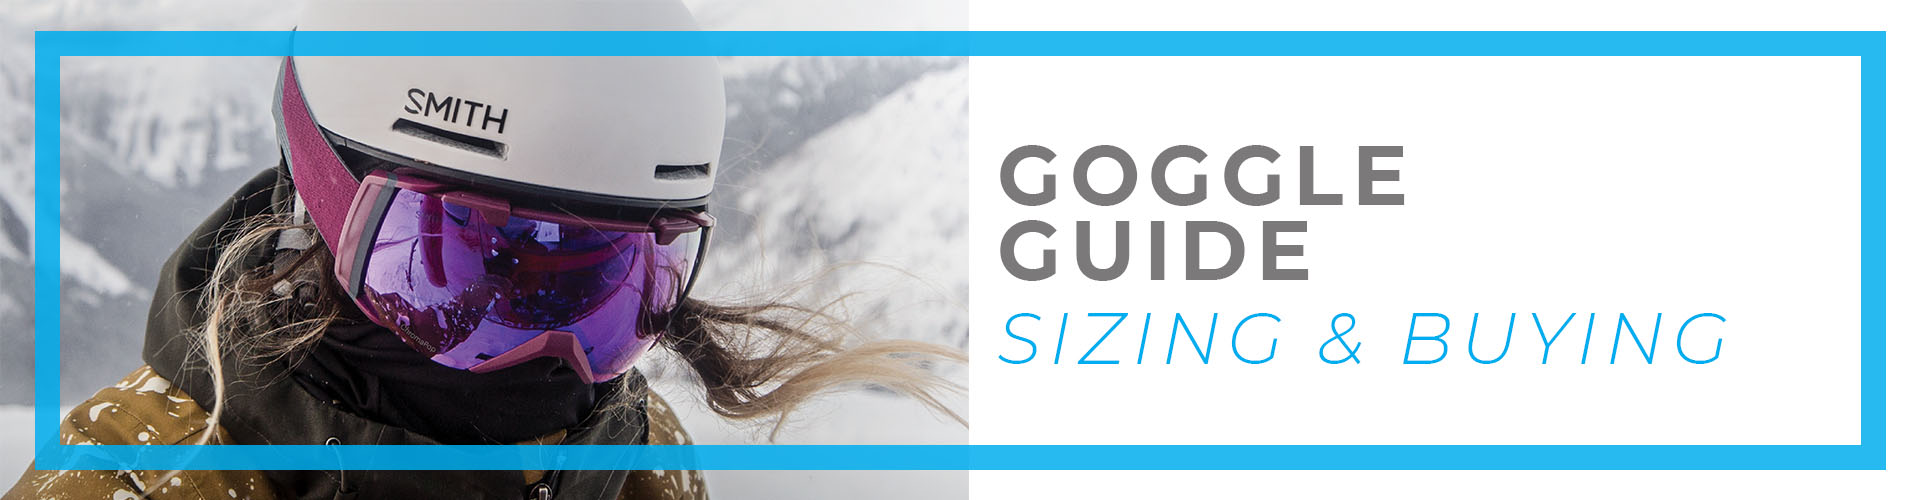 goggle-buyingguide-banner-1920x500.jpg